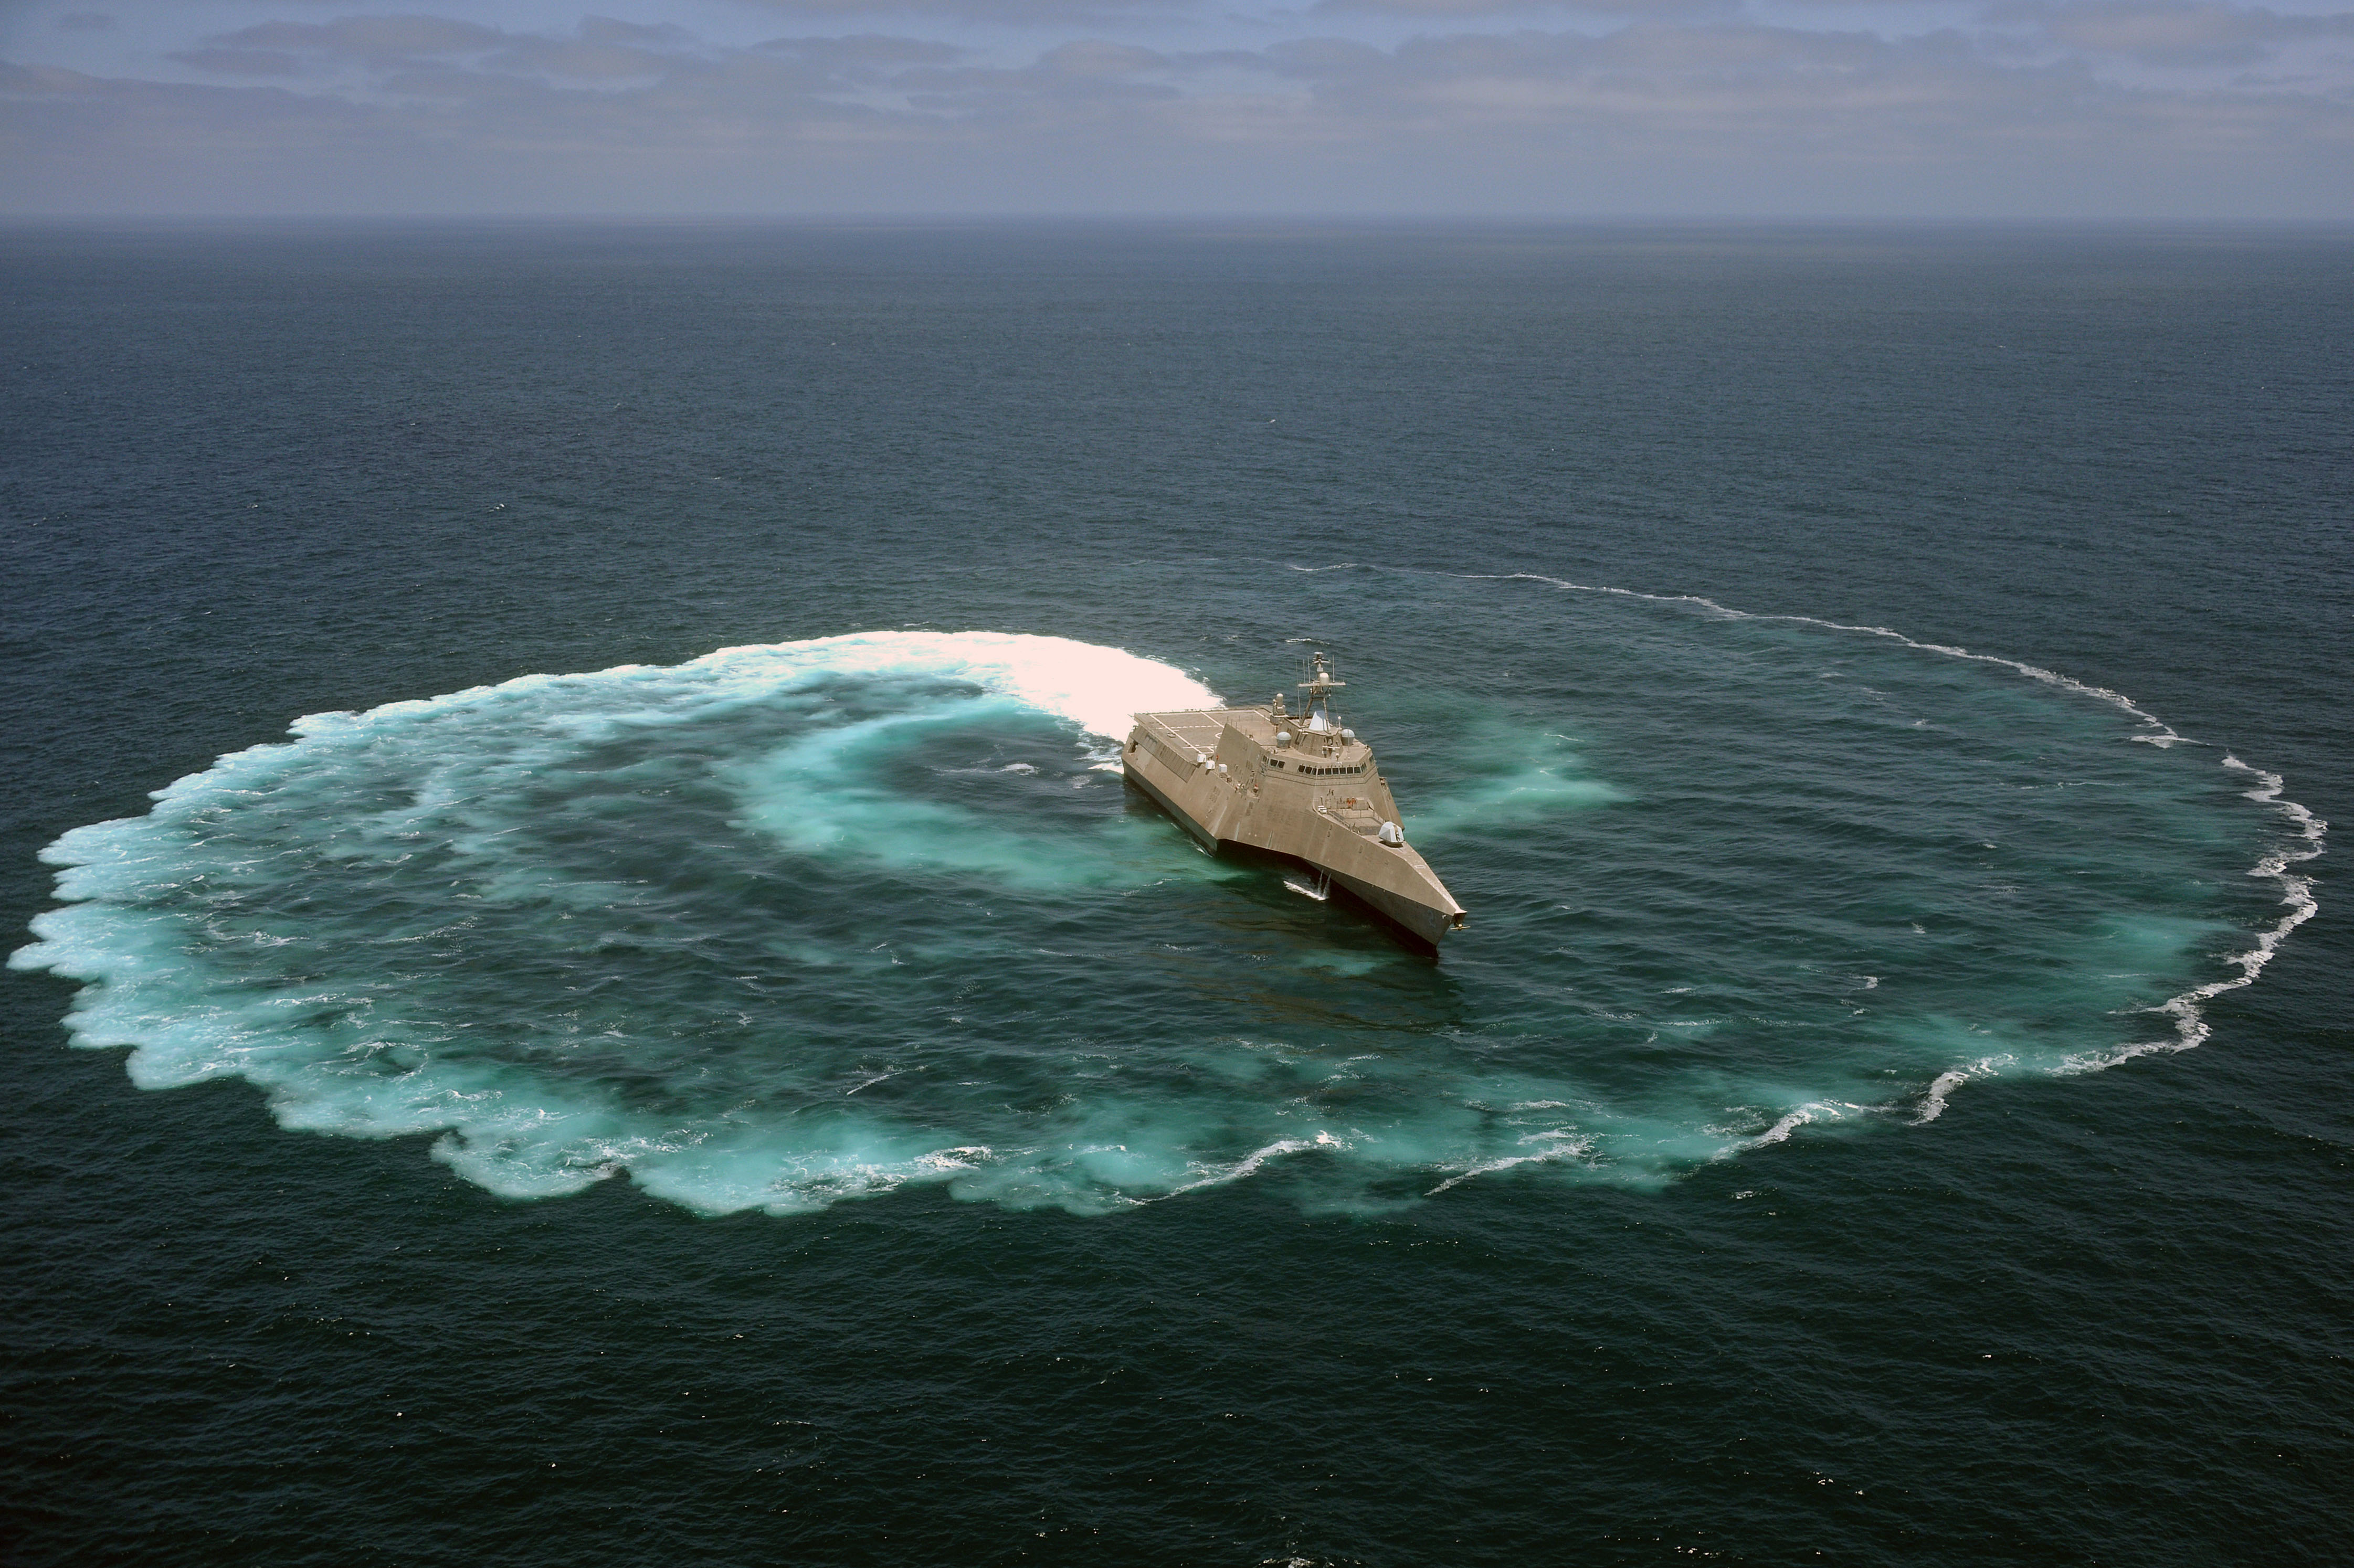 USS_Independence_demonstrates_its_maneuvering_capabilities.jpg